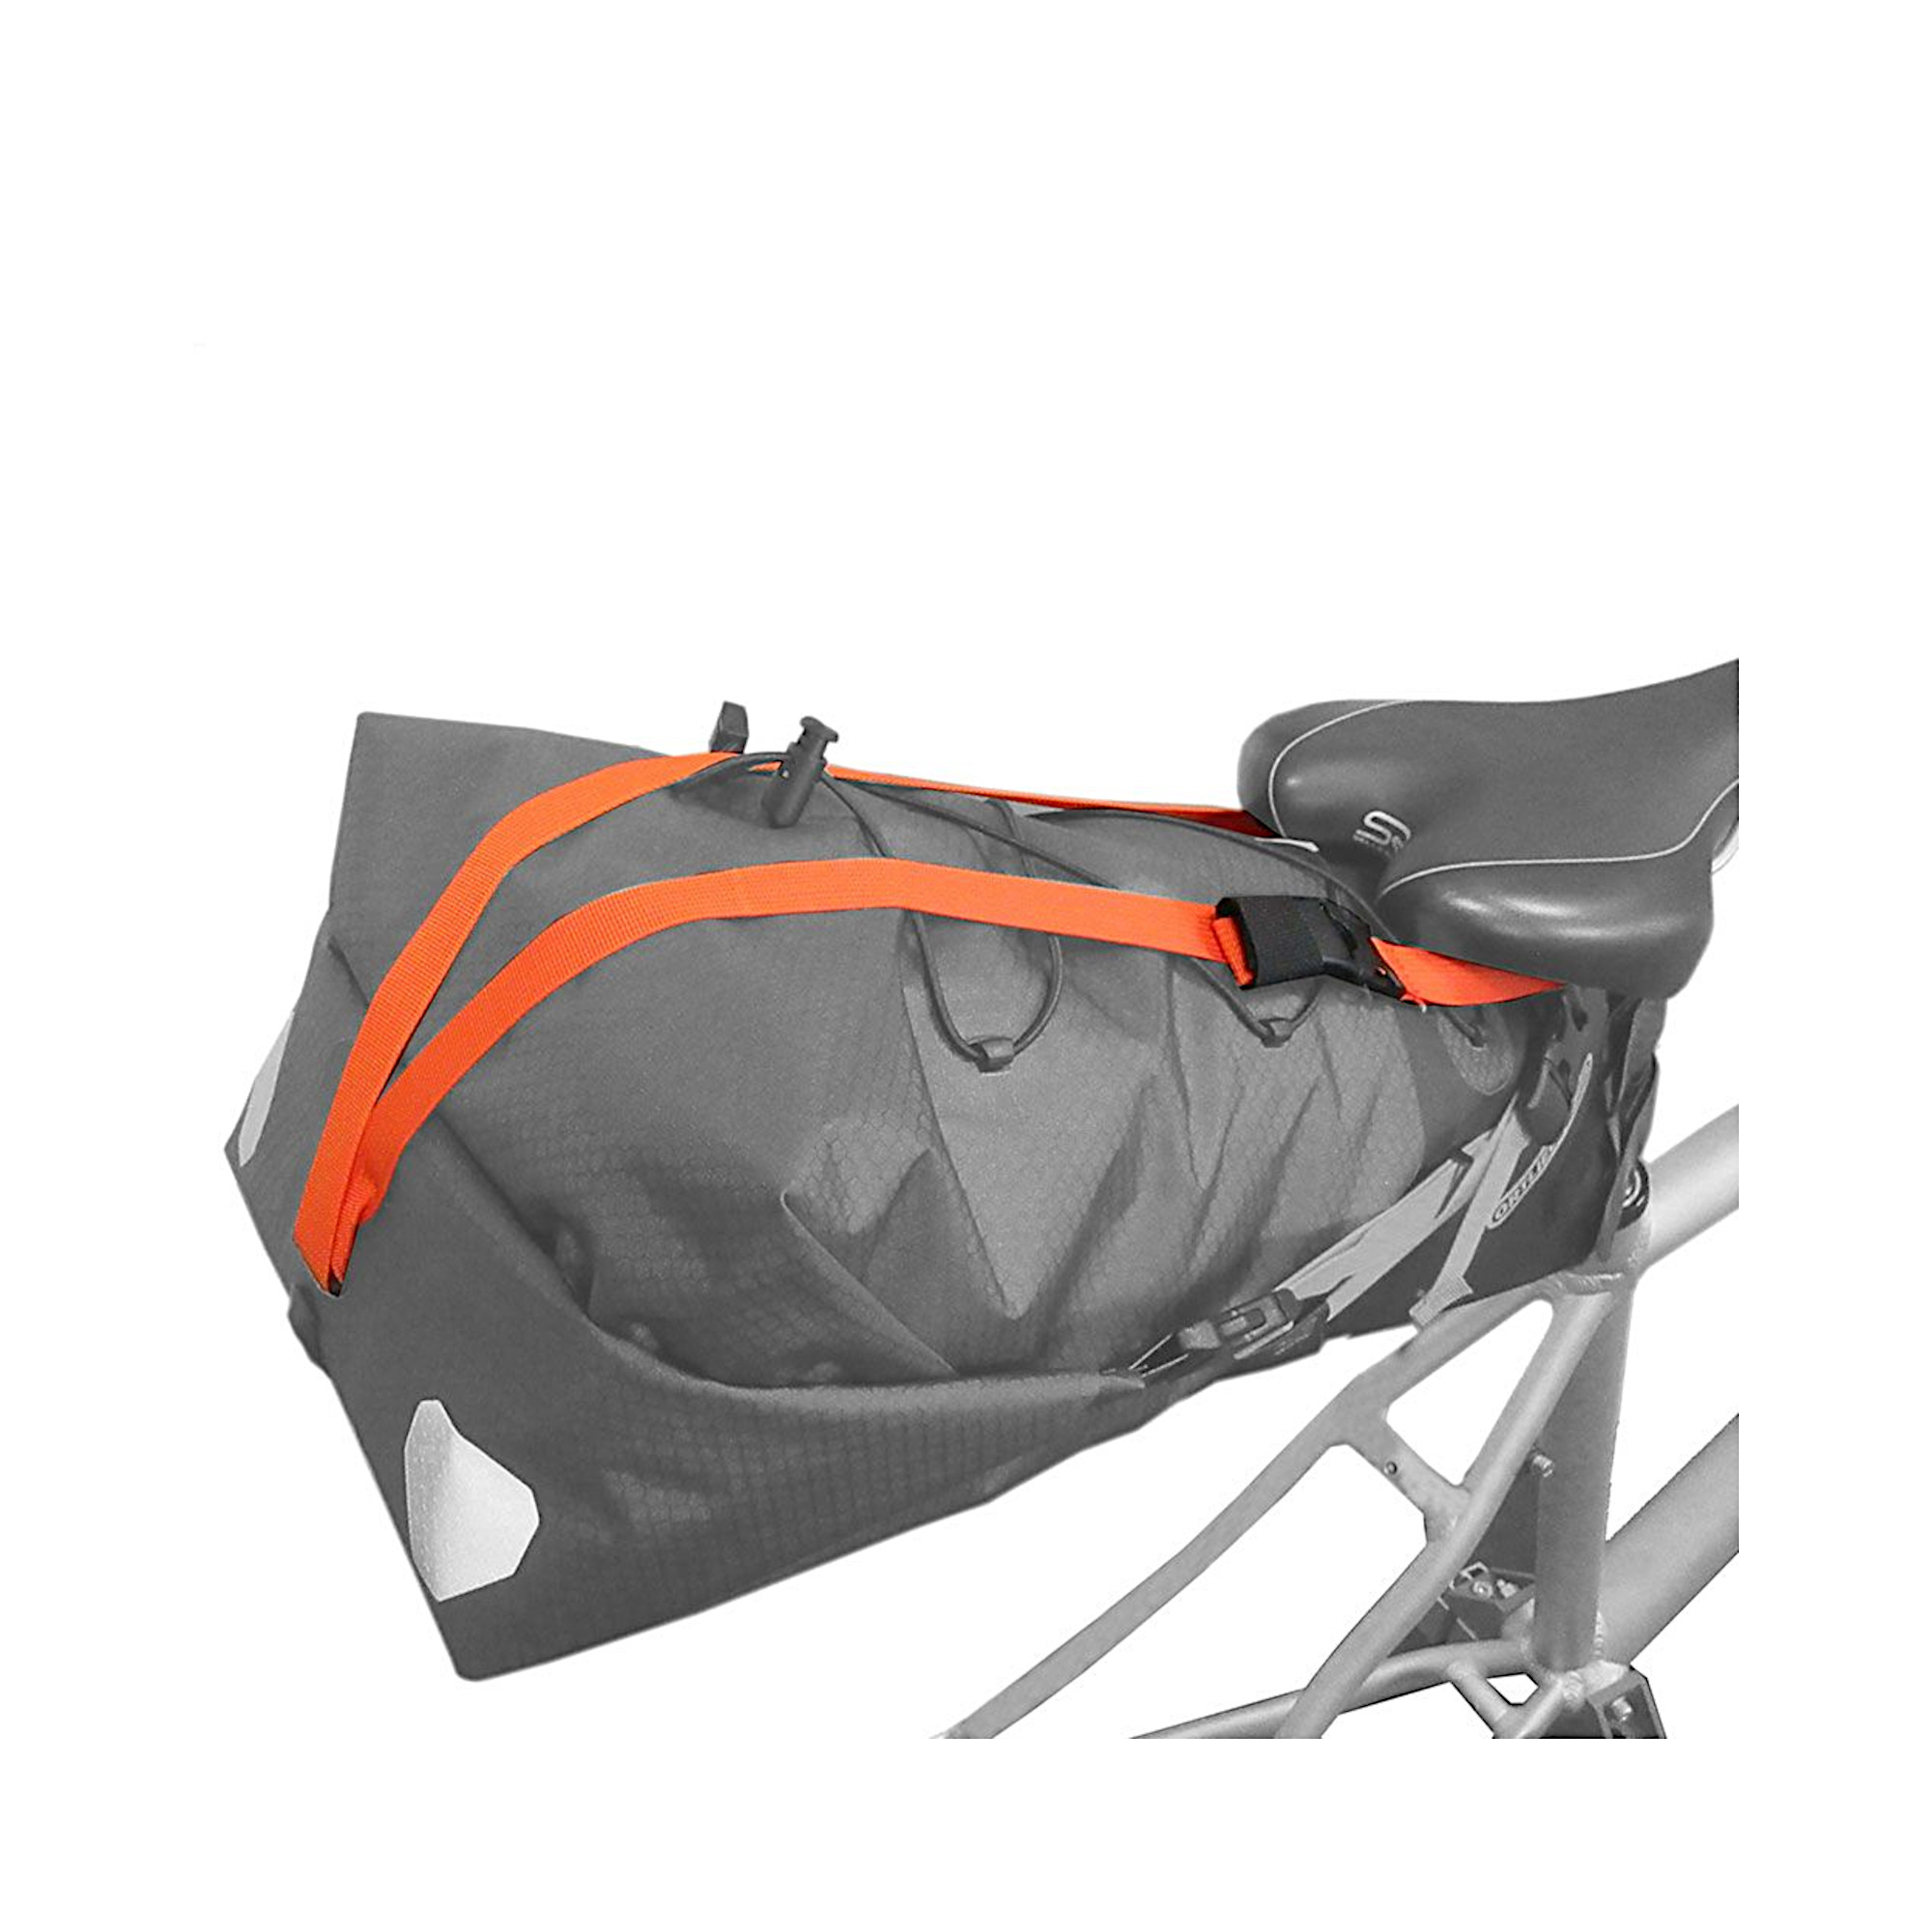 Ortlieb Seat Pack Abspannung